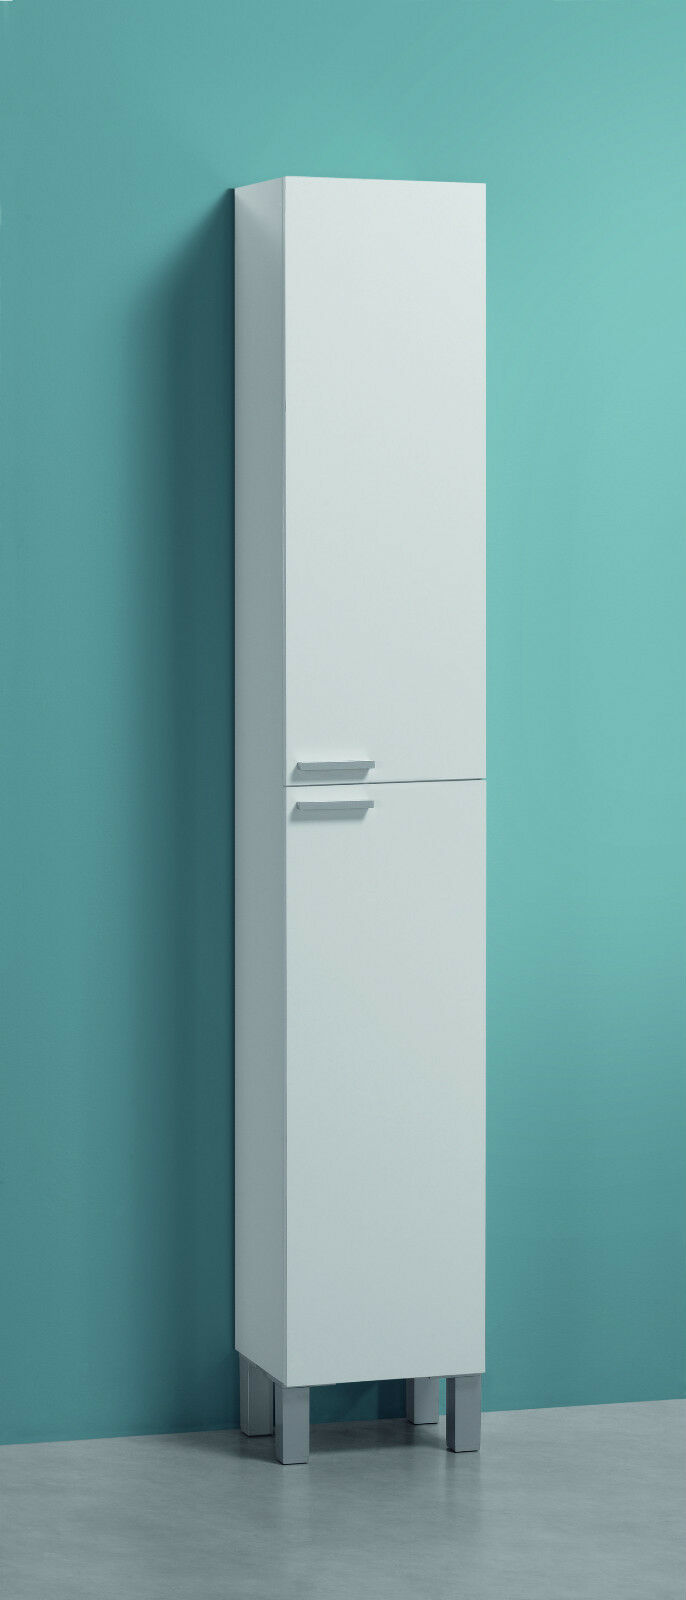 Koncept tall narrow bathroom cupboard storage cabinet soft - Tall bathroom storage cabinets with doors ...